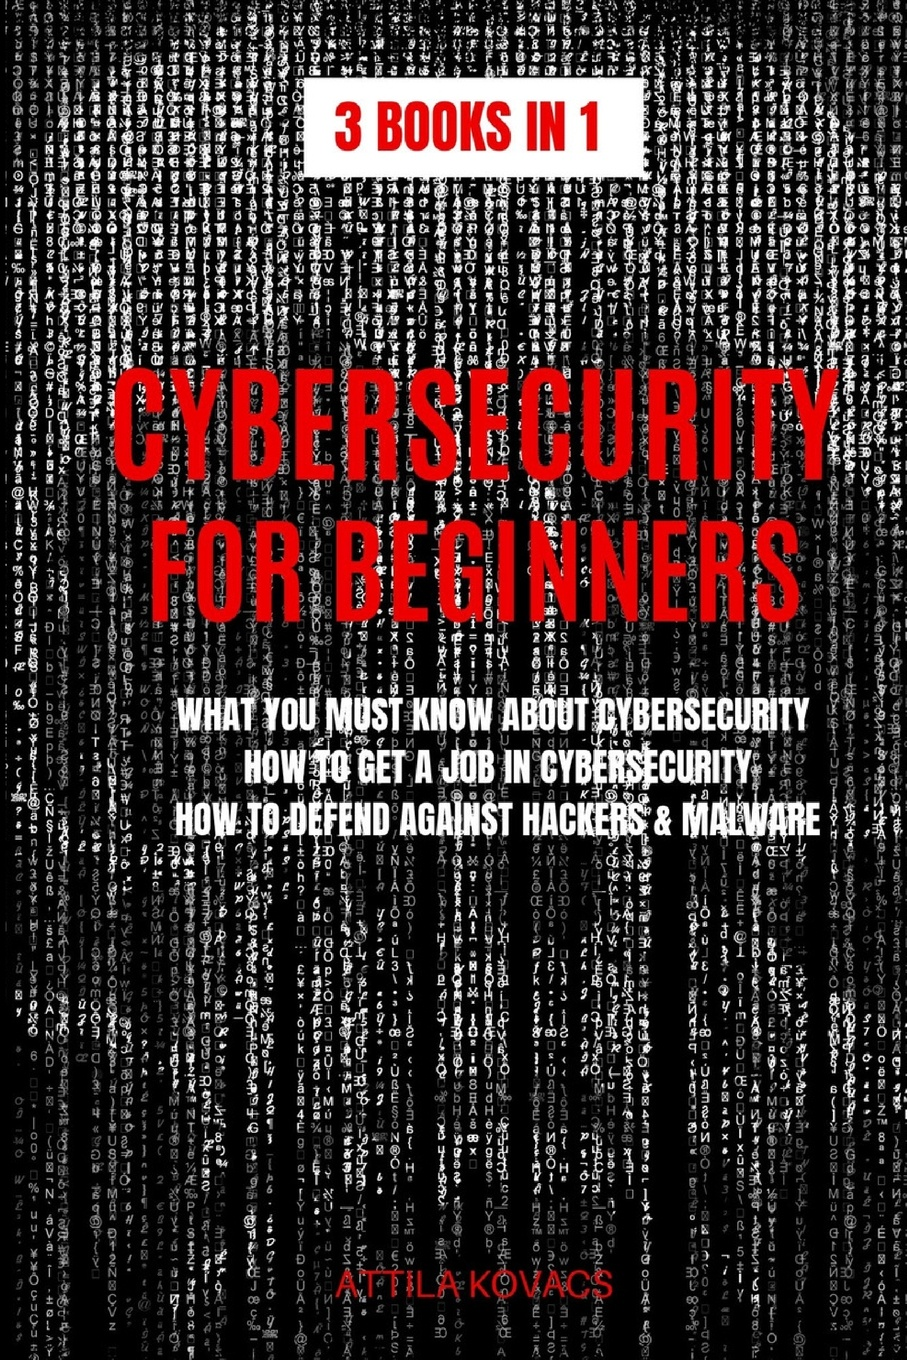 Attila Kovacs CYBERSECURITY FOR BEGINNERS. WHAT YOU MUST KNOW ABOUT CYBERSECURITY, HOW TO GET A JOB IN CYBERSECURITY, HOW TO DEFEND AGAINST HACKERS & MALWARE adam reiter you can get a job in fashion